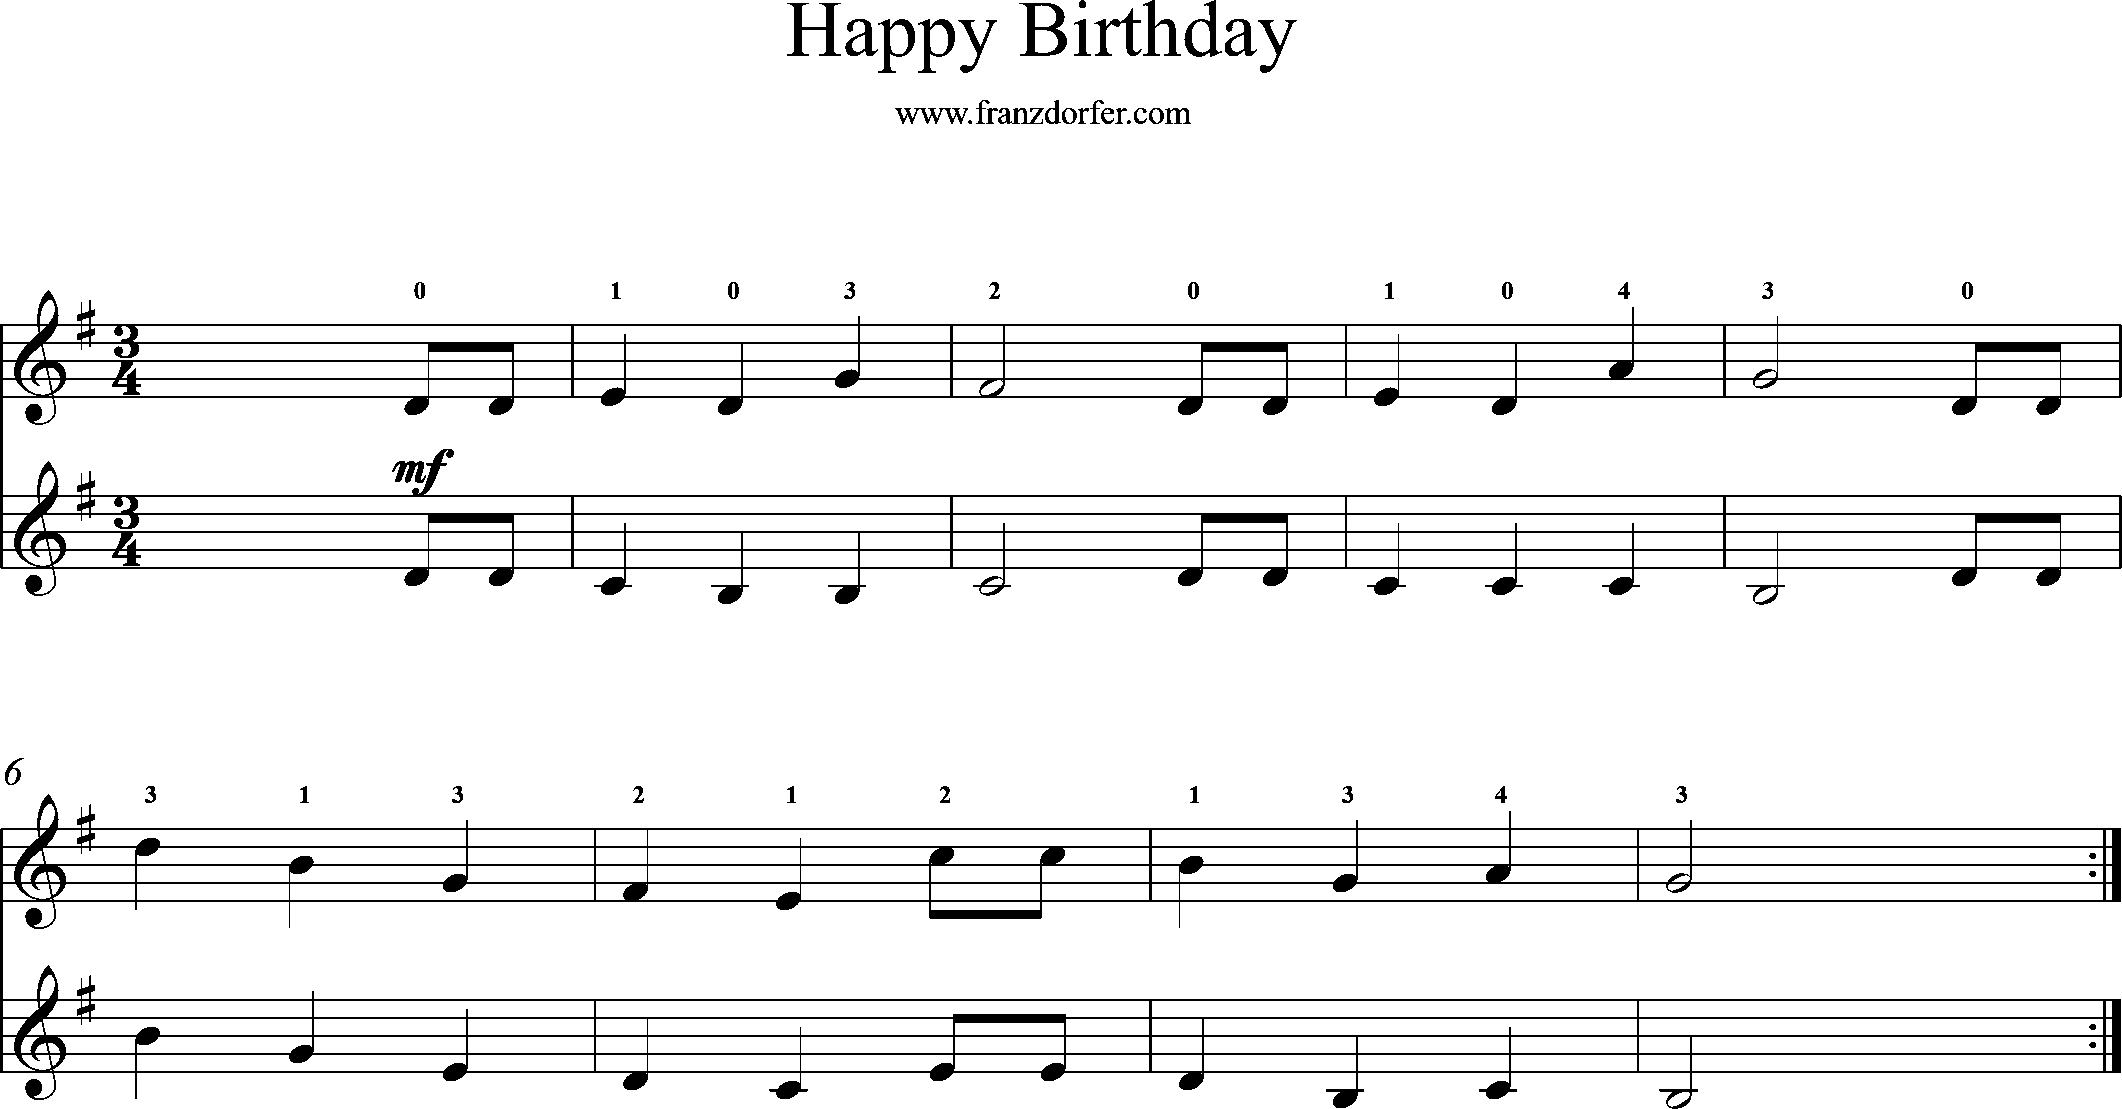 Sheetmusic for Violin, G-Major, Happy Birthday